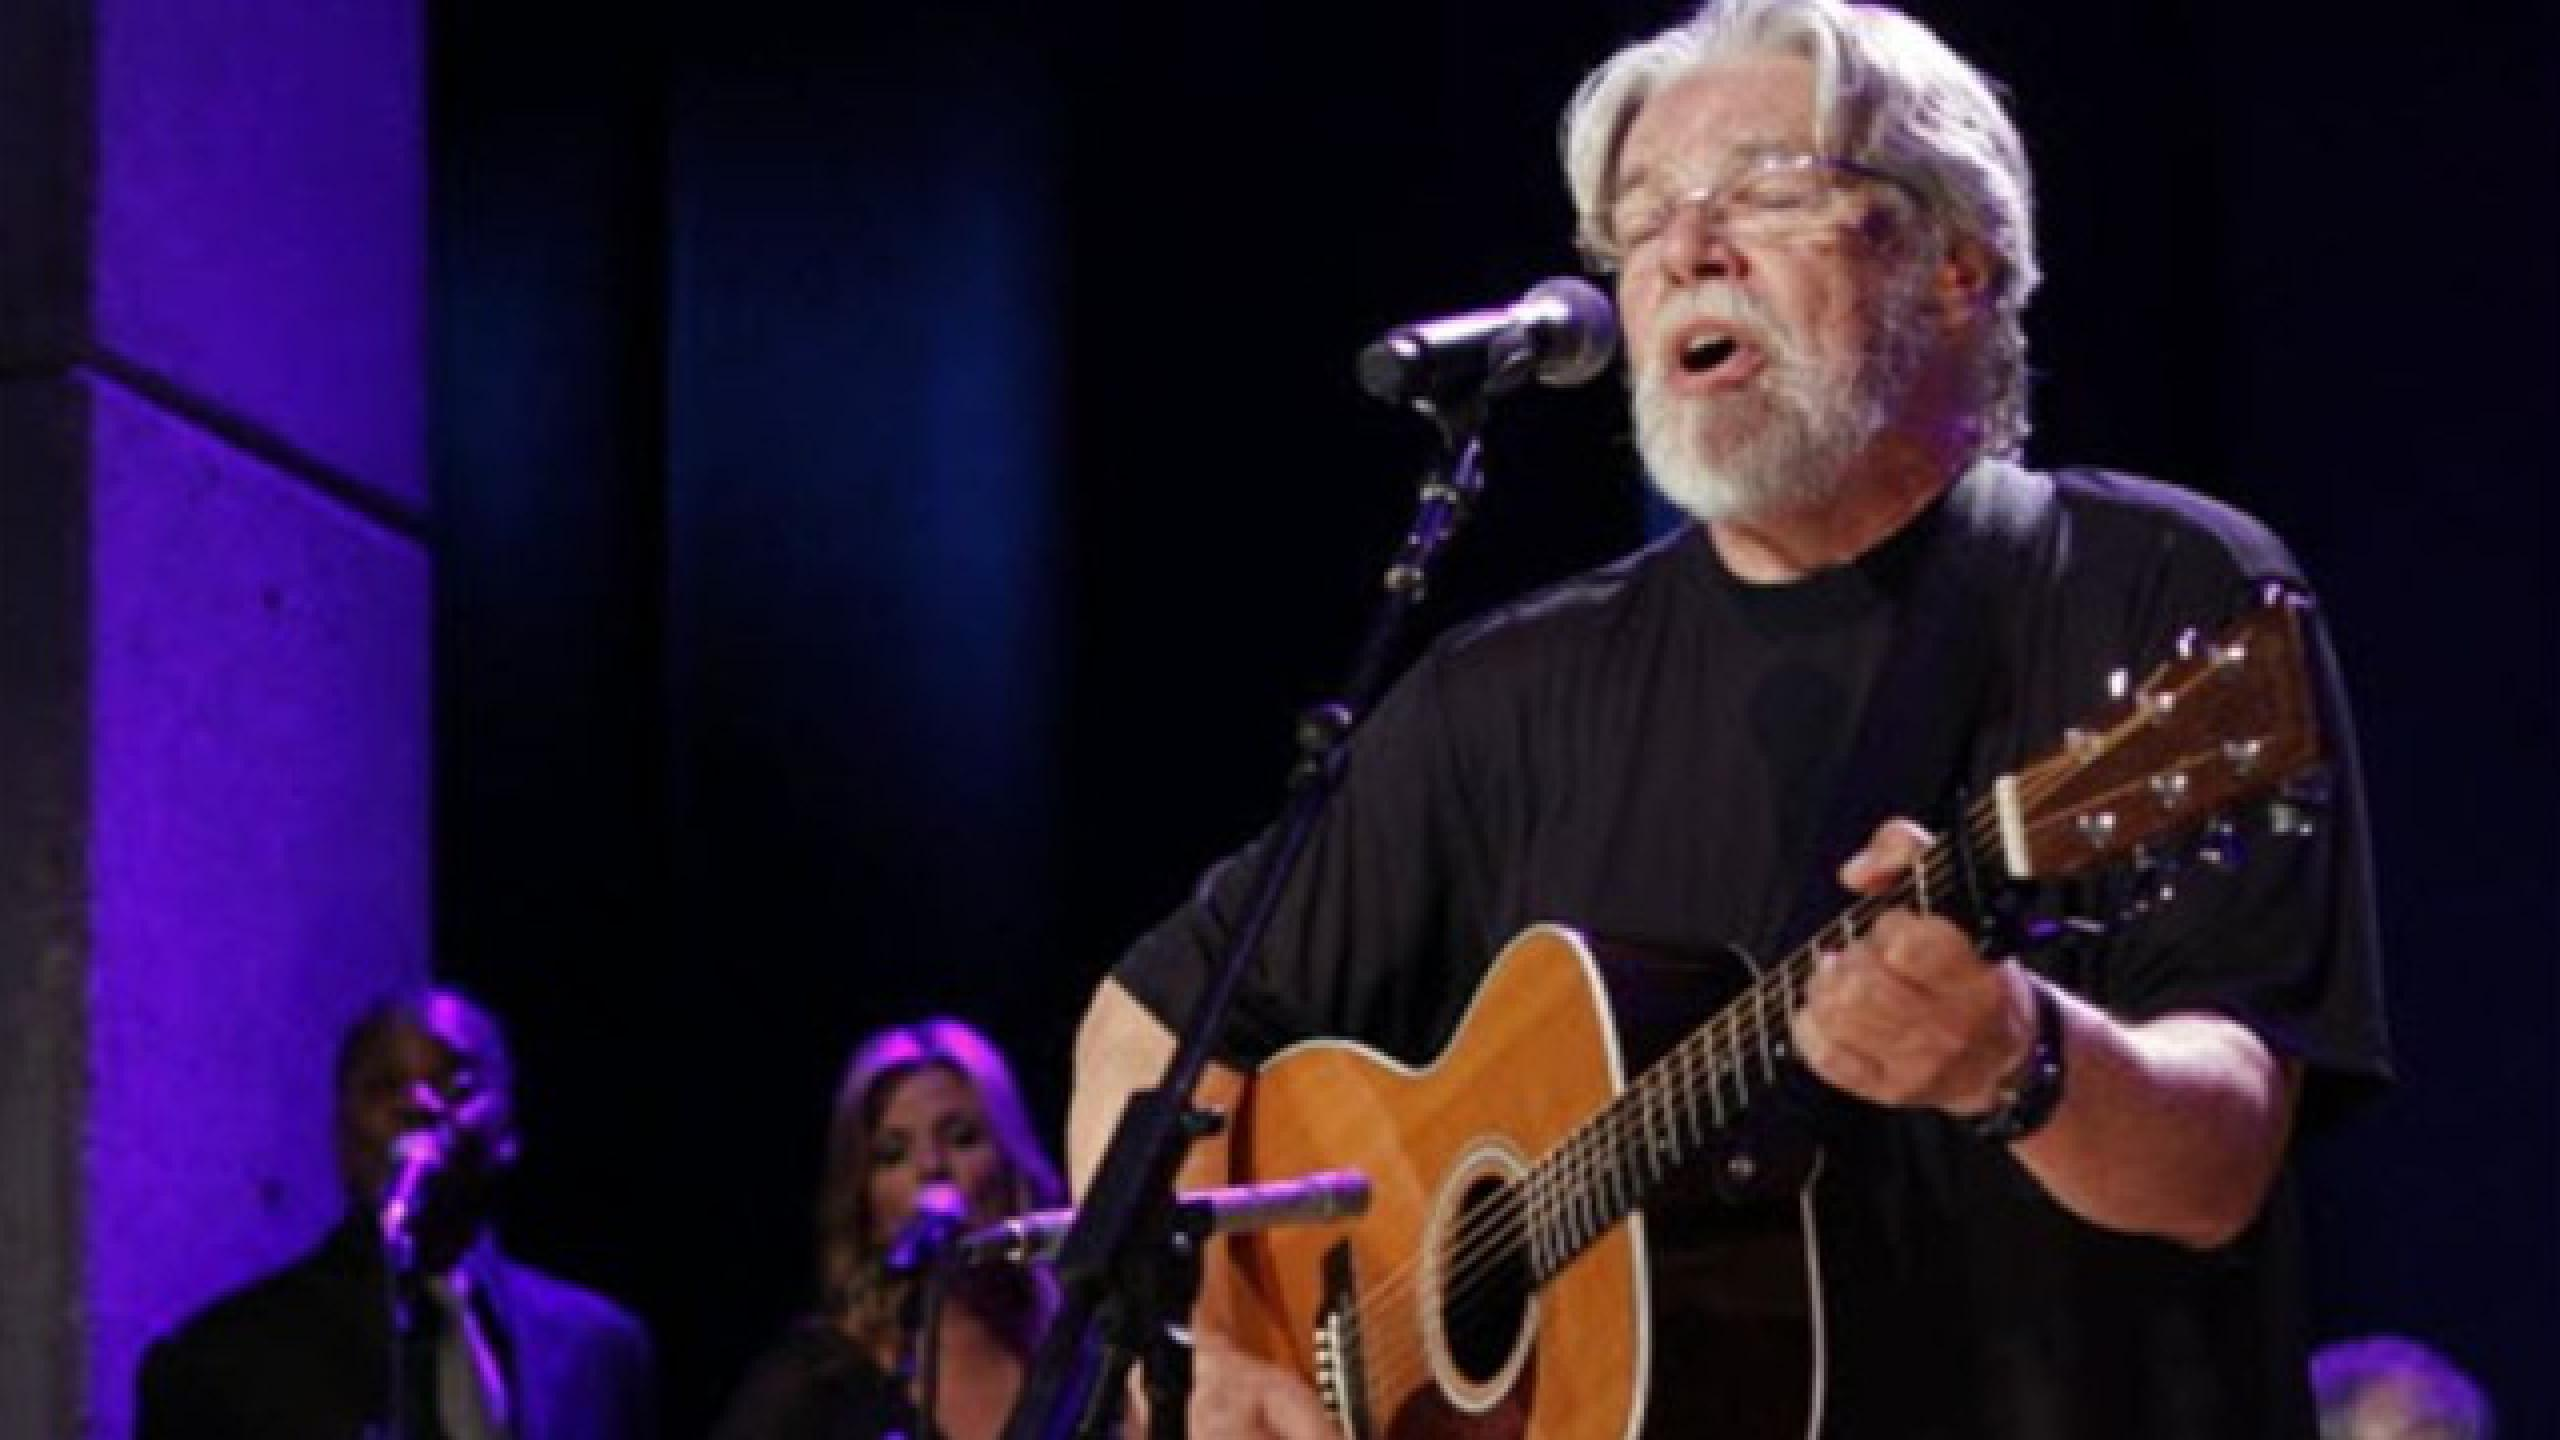 Bob Seger Tour 2020.Bob Seger Tour Dates 2019 2020 Bob Seger Tickets And